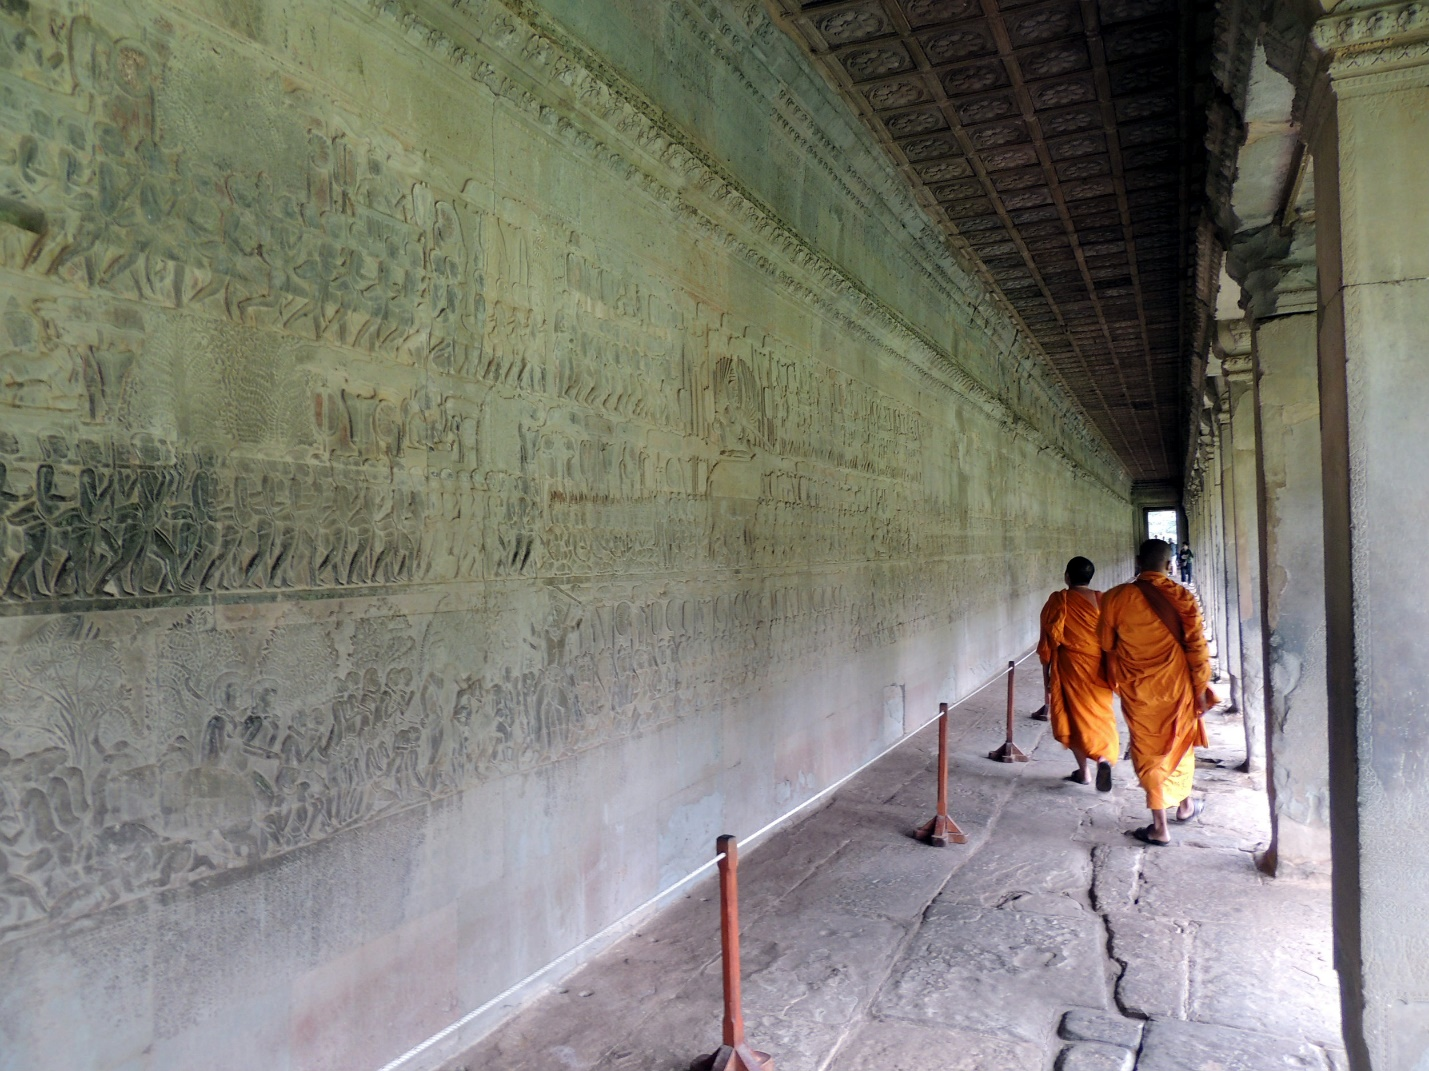 You can see many unique reliefs in the lobby of the first structure in Angkor Wat